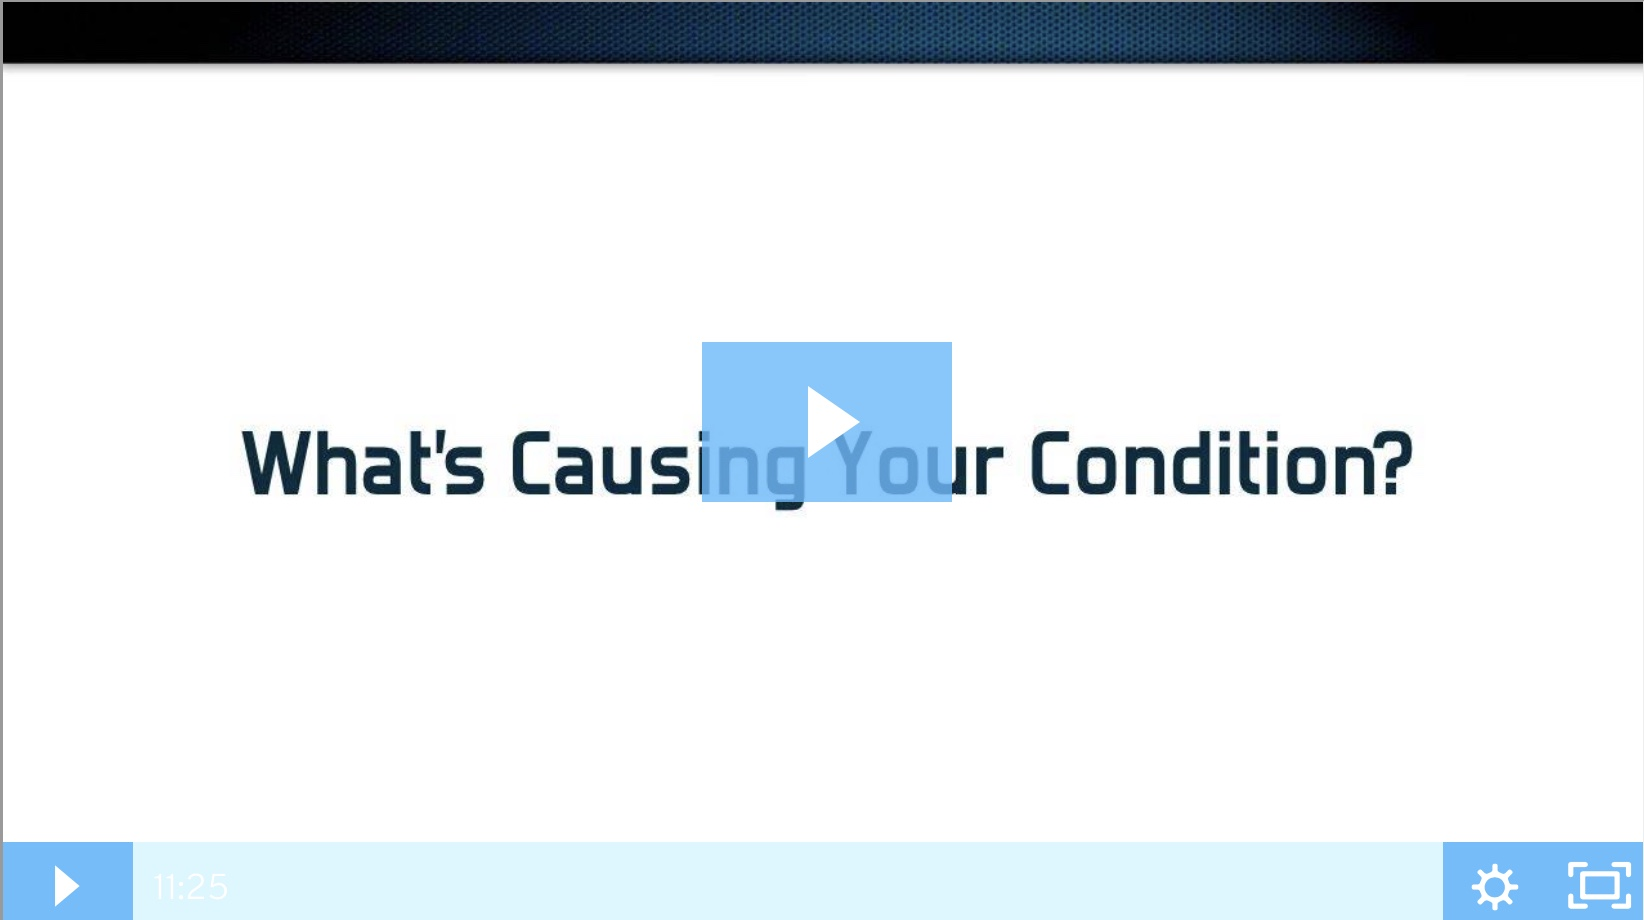 What's causing your condition?